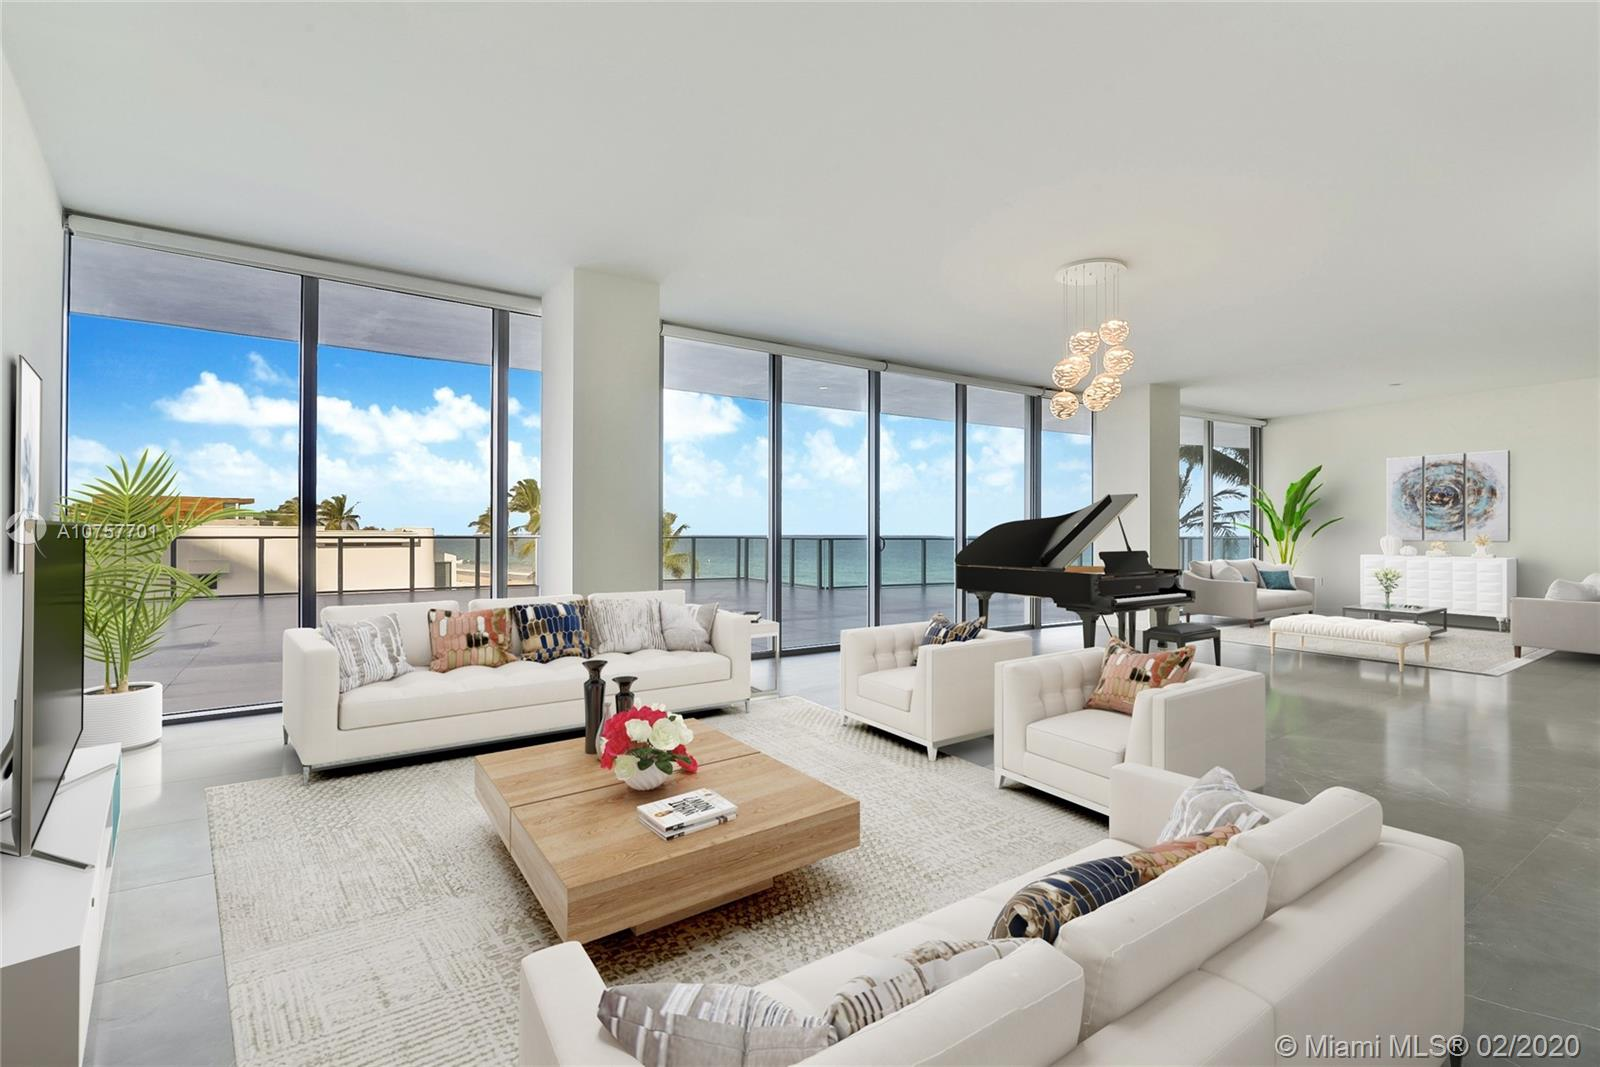 """SELLER CLOSE OUT SALE! COME EXPERIENCE THIS """"ONE OF A KIND"""" RESIDENCE WHICH OFFERS AN """"ON THE SAND"""" BEACH HOME FEEL AND IS SITUATED IN AUBERGE'S STUNNING BOUTIQUE NORTH TOWER. THIS DESIRABLE FLOORPLAN OFFERS OVER 3750 SQ FEET OF INTERIOR LIVING SPACE WITH DRAMATIC UNOBSTRUCTED OCEAN VIEWS FROM EVERY ROOM INCLUDING THE MASTER BATHROOM. RESIDENCE 205 OFFERS THE ULTIMATE PRIVACY FOR A BEACH HOME WHICH OPENS INTO A PRIVATE FOYER AND INCLUDES 3 BEDROOMS / 4.5 BATHS + DEN, PLUS MAID QUARTERS (WITH A SEPARATE ENTRANCE) AND OVER 3600 SQ FEET OF TERRACE SPACE! RESIDENCE COMES FINISHED  WITH 24 X 48 PORCELAIN FLOORING, CHEF'S KITCHEN WITH ITALIAN CABINETRY FEATURING WOLF & SUB-ZERO APPLIANCES / GAS STOVE, CONTROL 4 UPGRADE INCLUDING MOTORIZED SHADES & MORE!"""